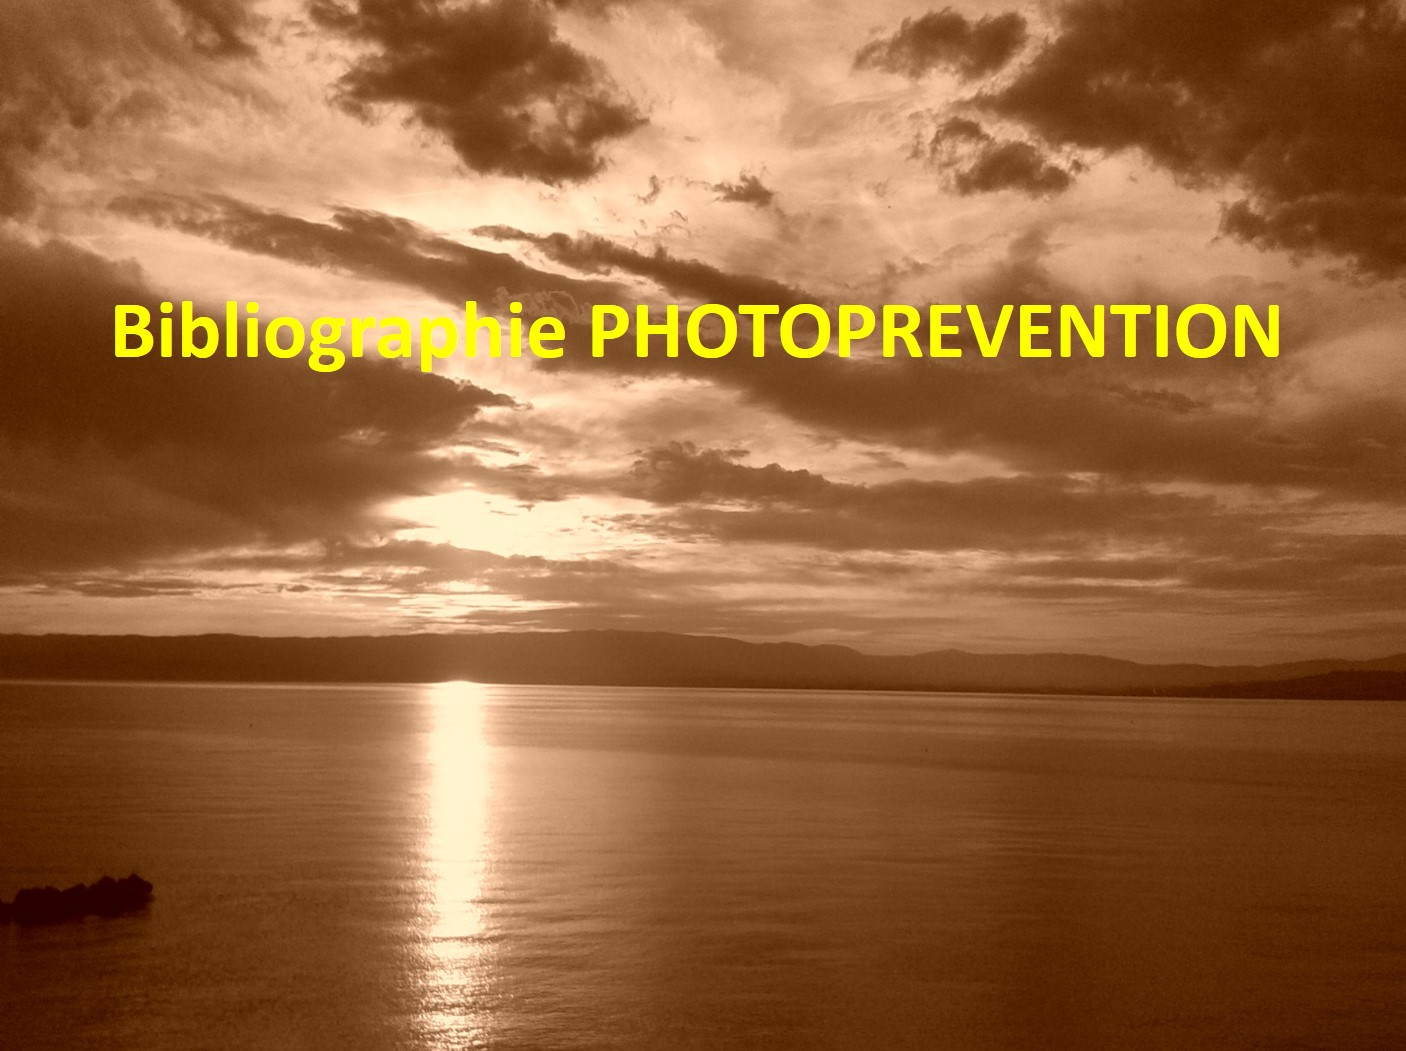 BIBLIOGRAPHIE PHOTOPREVENTION